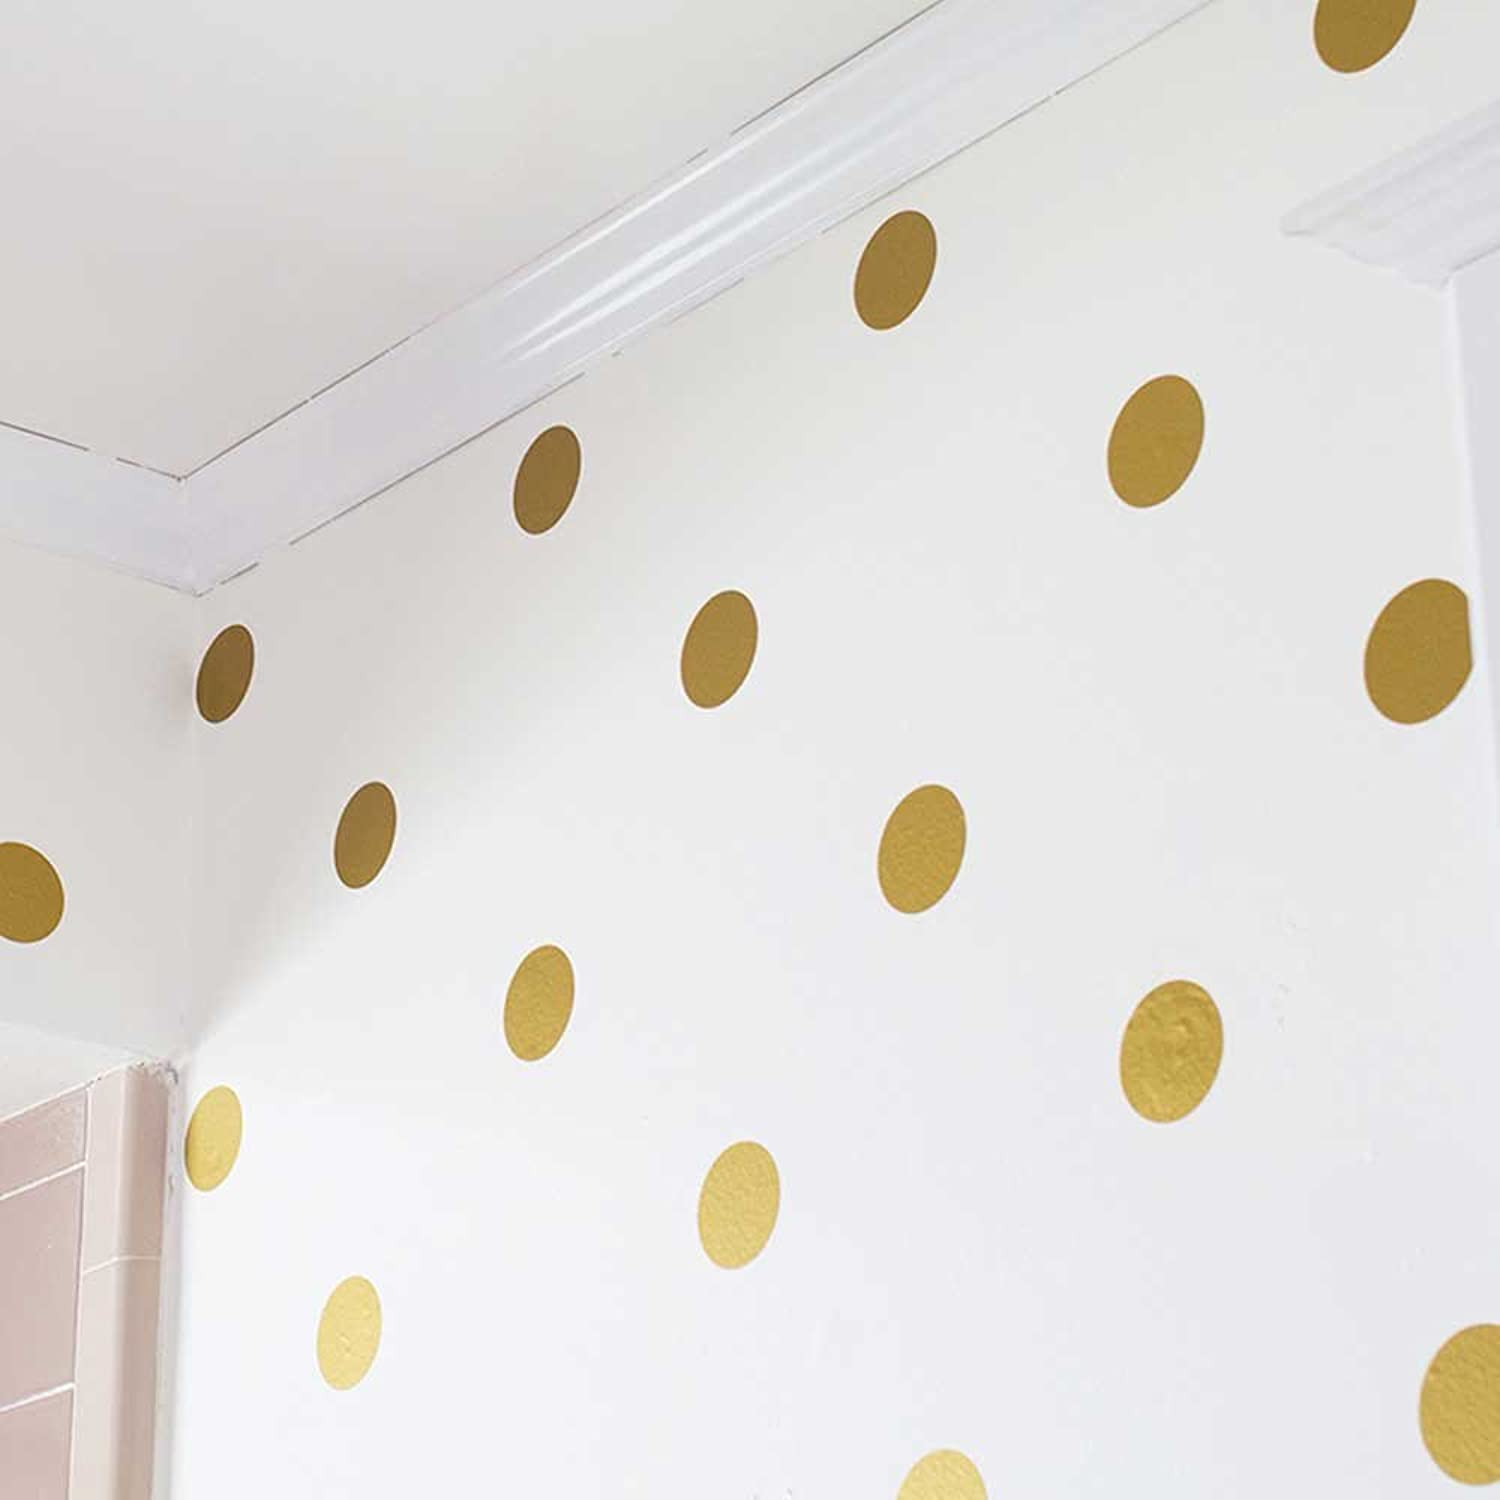 gold Polka Dots Wall Sticker   Baby Stickers   golden Polka Dots Wall Decals For Kids room (10cm wide x 20 dot stickers)